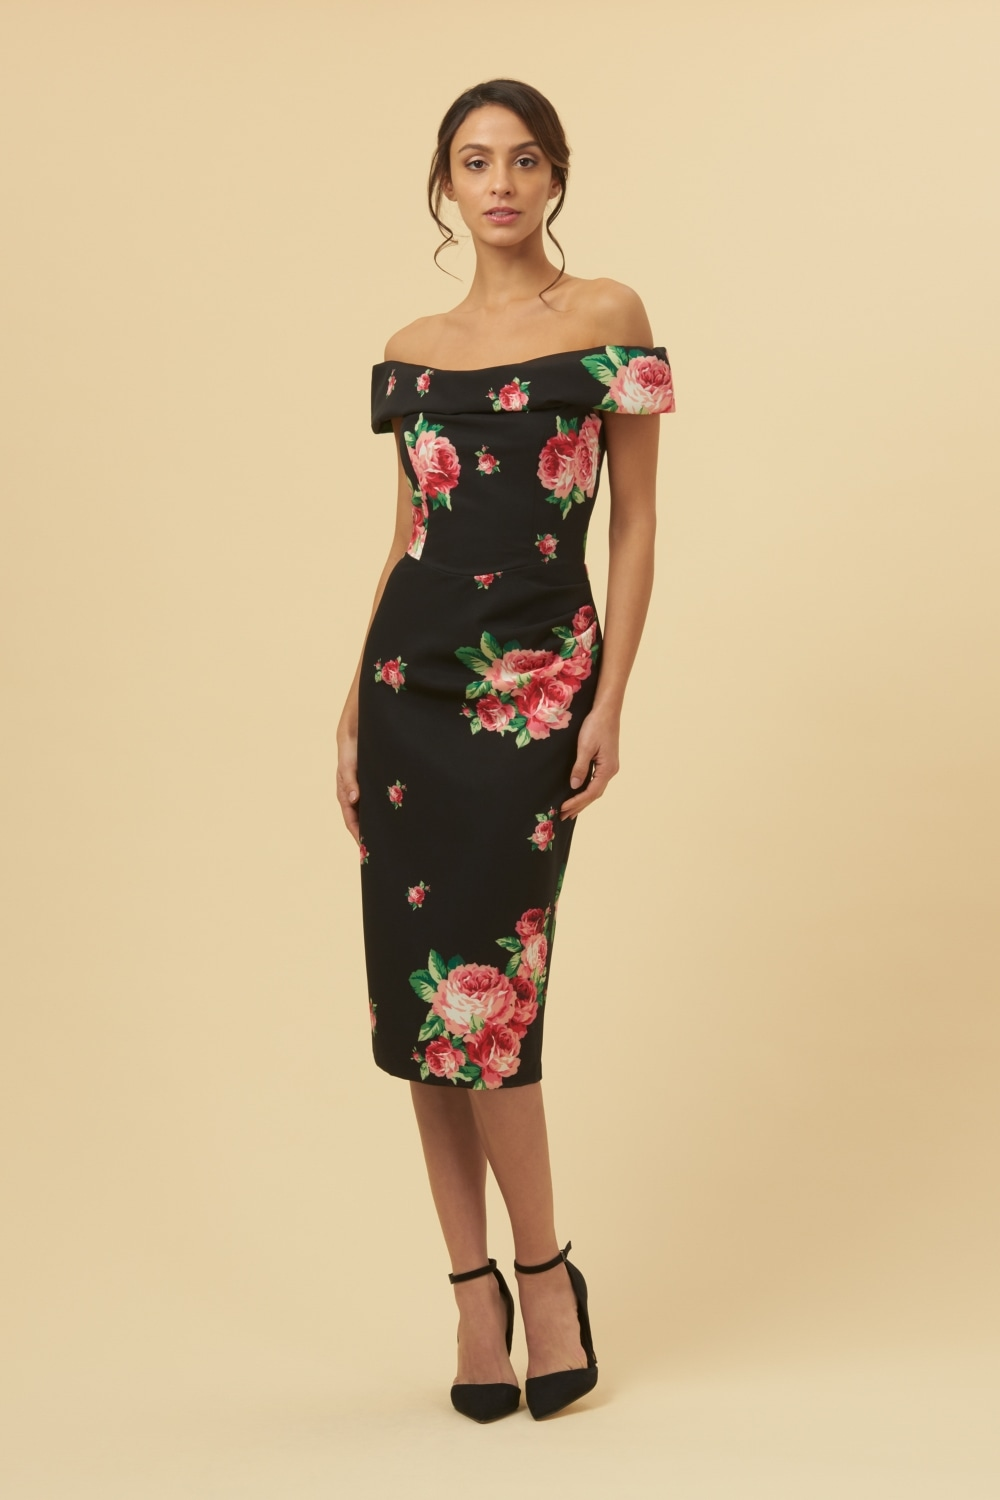 bf48519c27683 The Pretty Dress Company Thea Lamour Floral Pencil Dress - SALE from ...